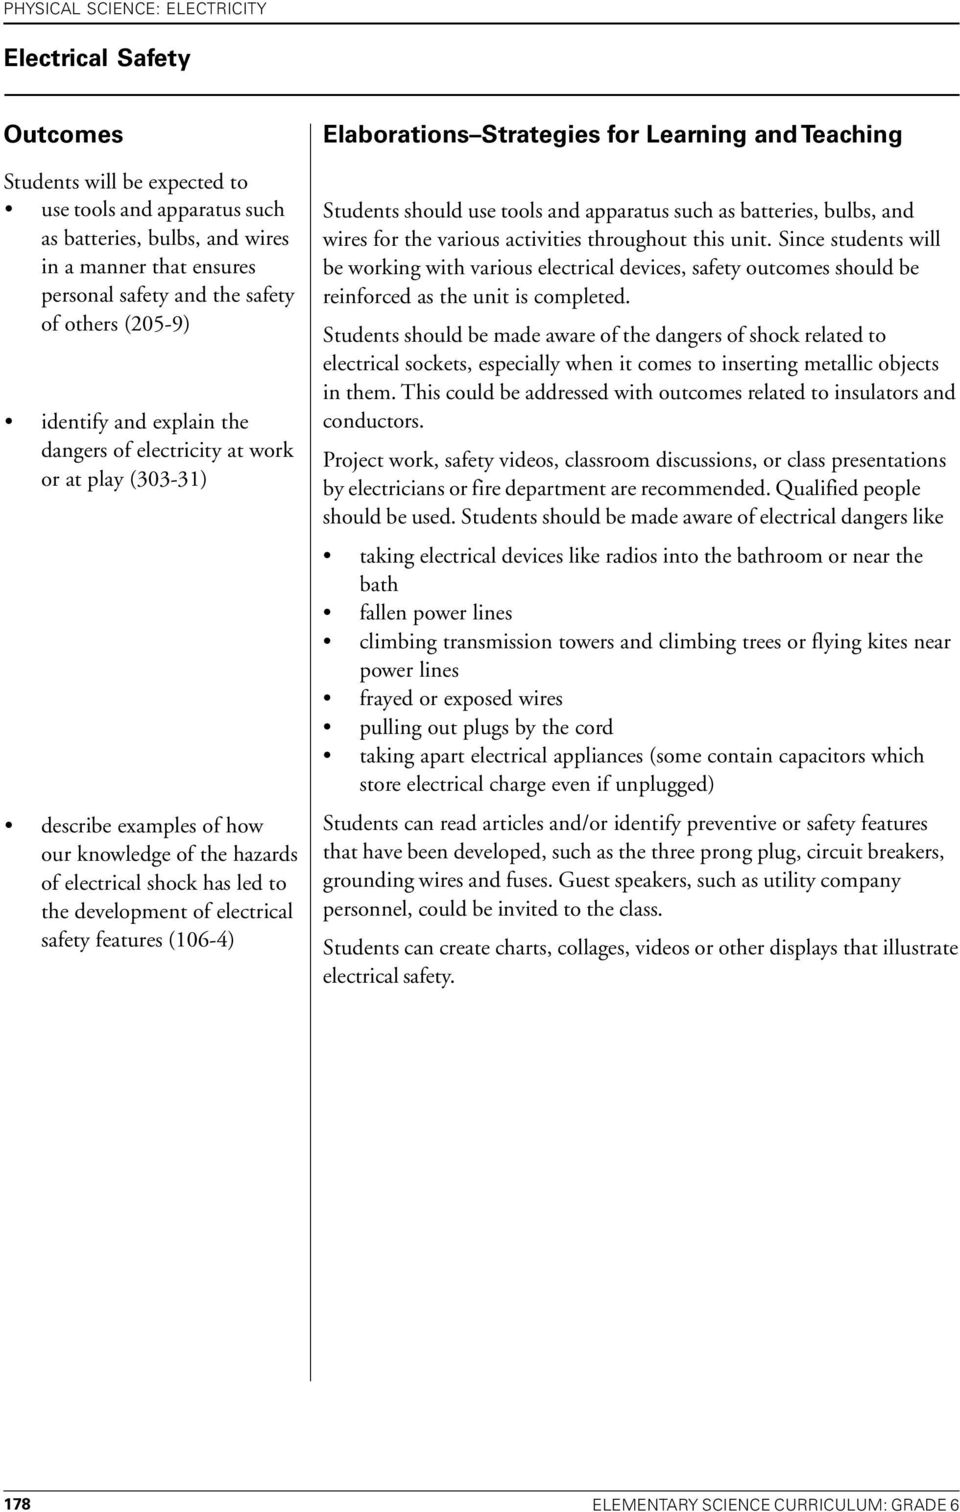 Grade 6 Life Science Diversity Of Pdf Bitesize Physics Series And Parallel Circuits Revision Page 4 106 Elaborations Strategies For Learning Teaching Students Should Use Tools